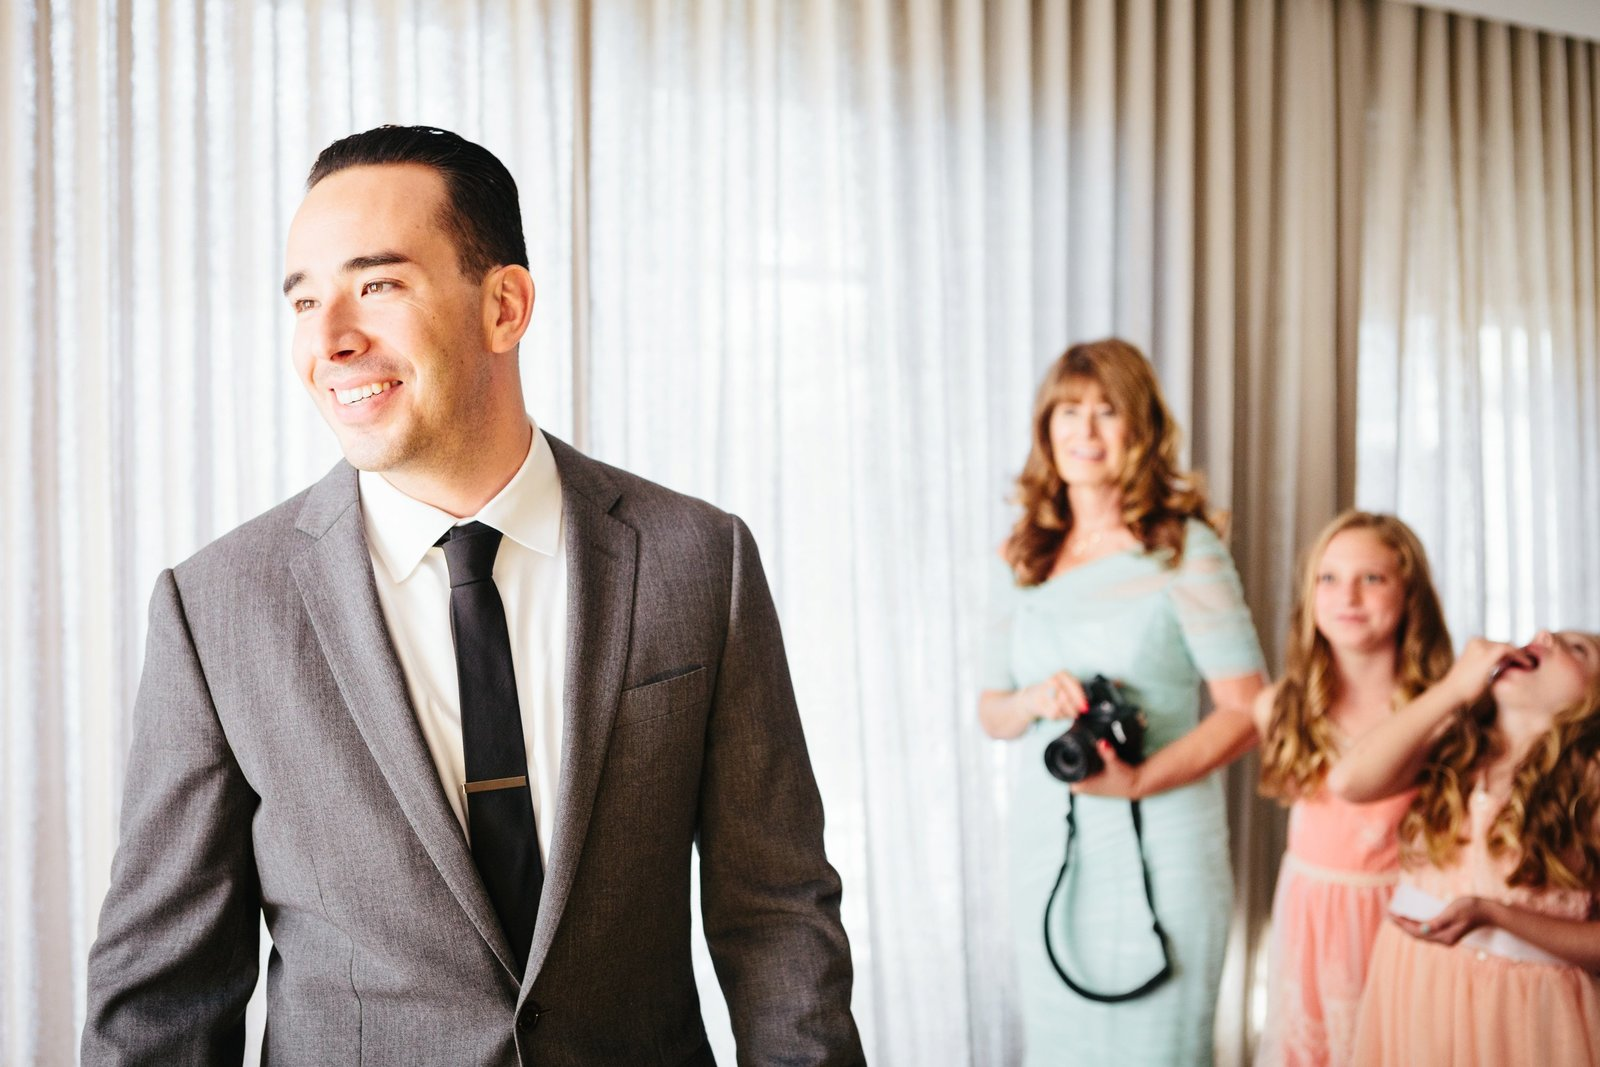 Wedding Photos-Jodee Debes Photography-064